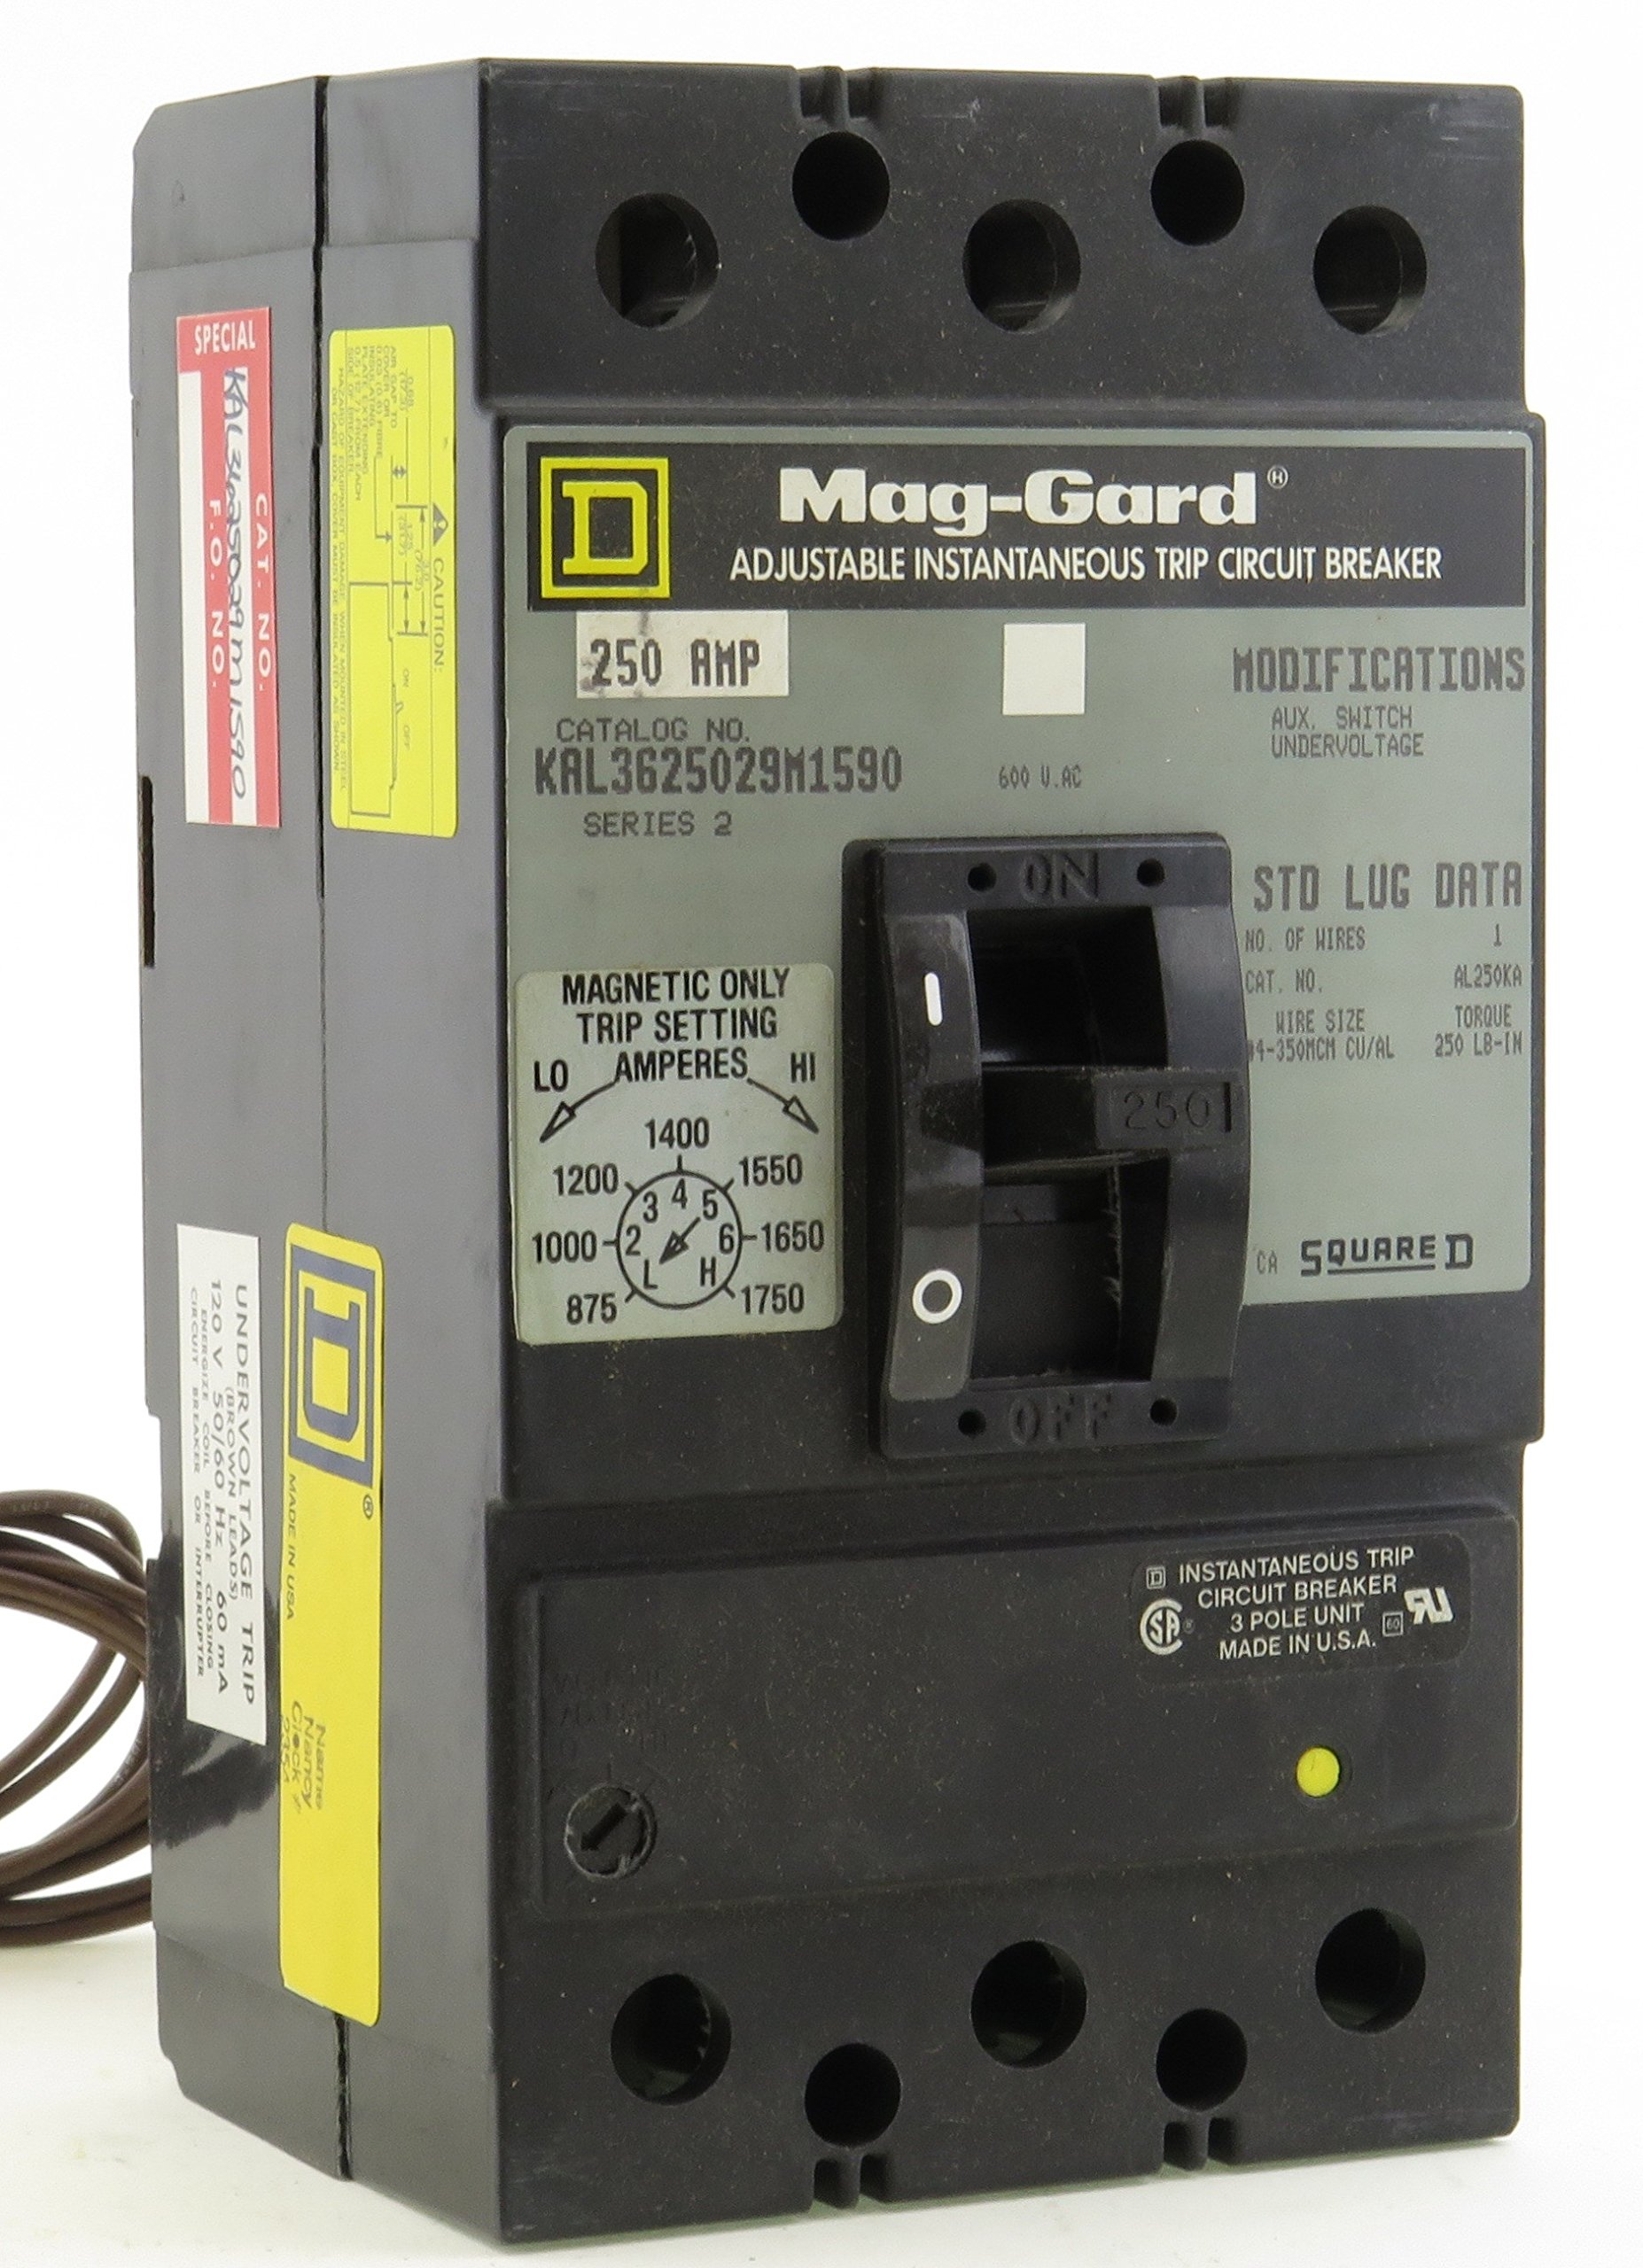 KAL3625029M1590 3P 250A 600V Trip Setting 875 To 1750 Amp ADJUSTABLE INSTANTANEOUS TRIP CIRCUIT BREAKER